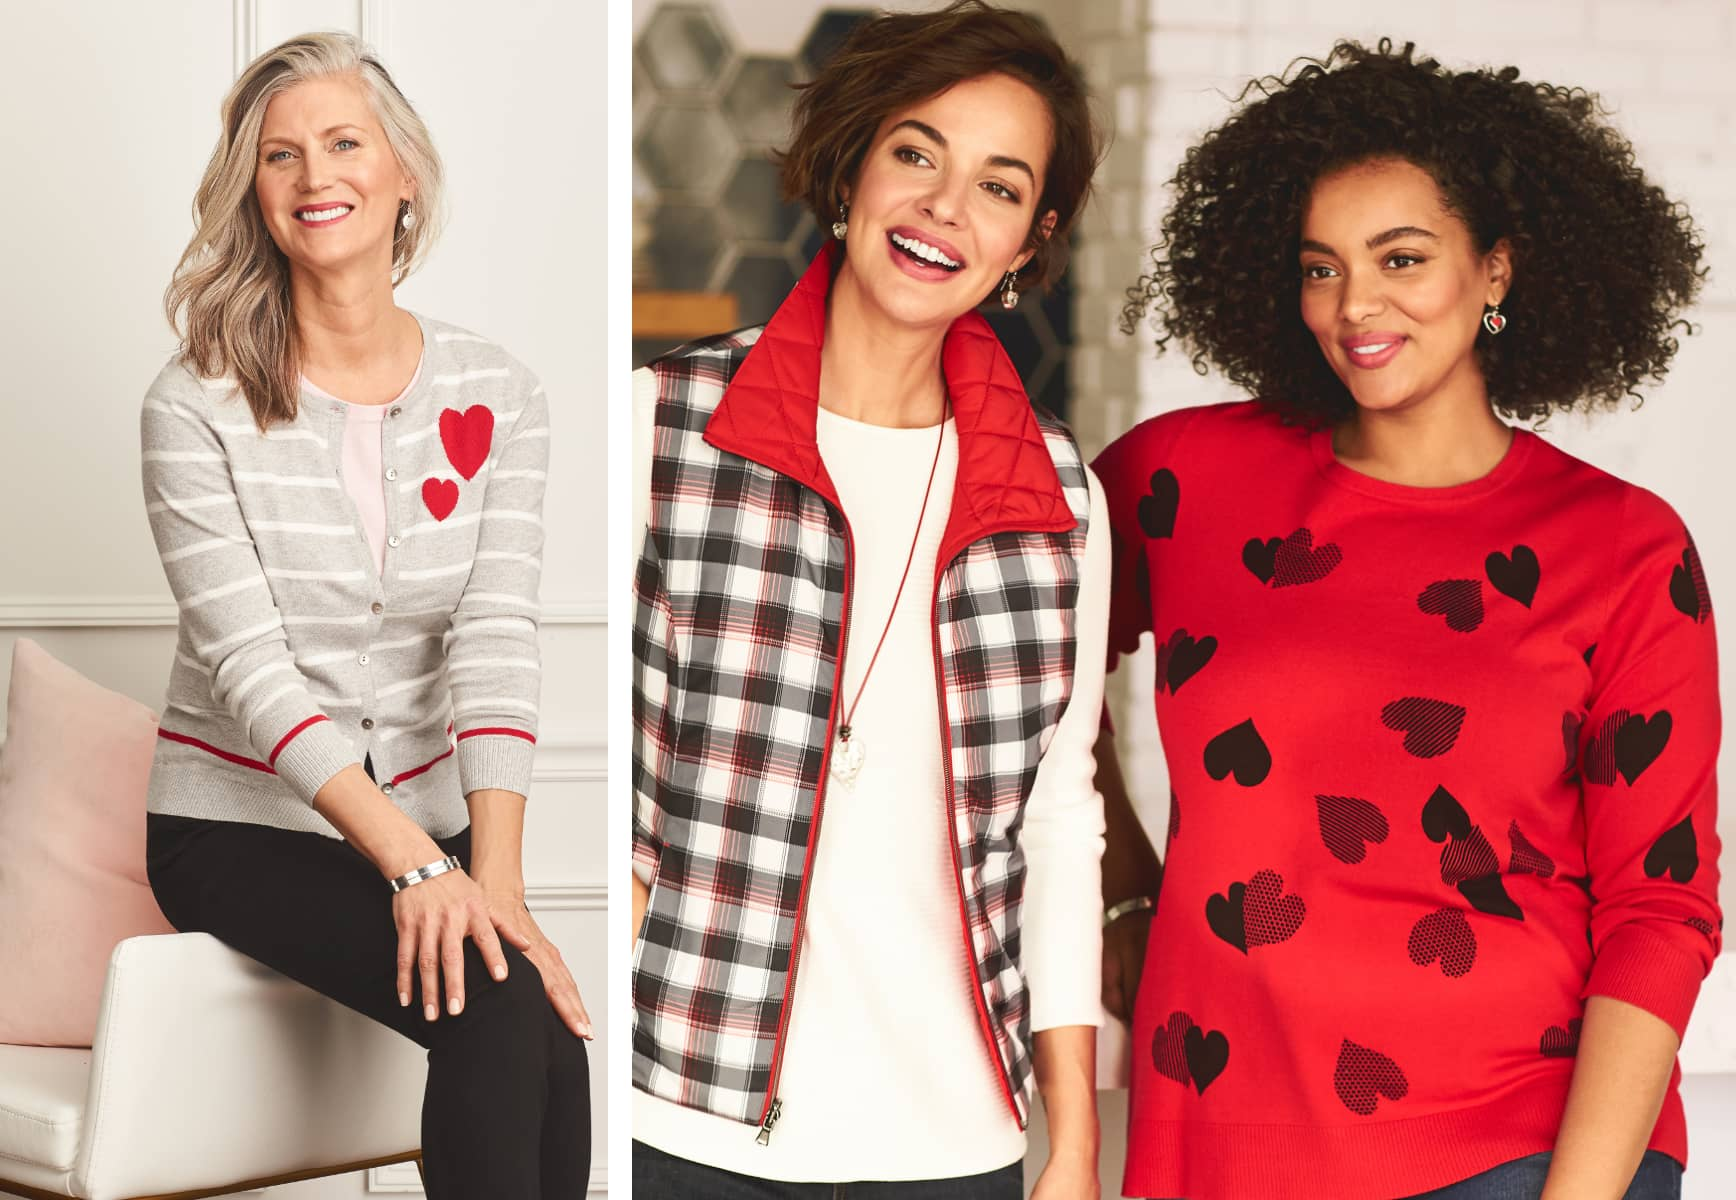 Three Women Wearing Heart themed Sweaters and Tops.